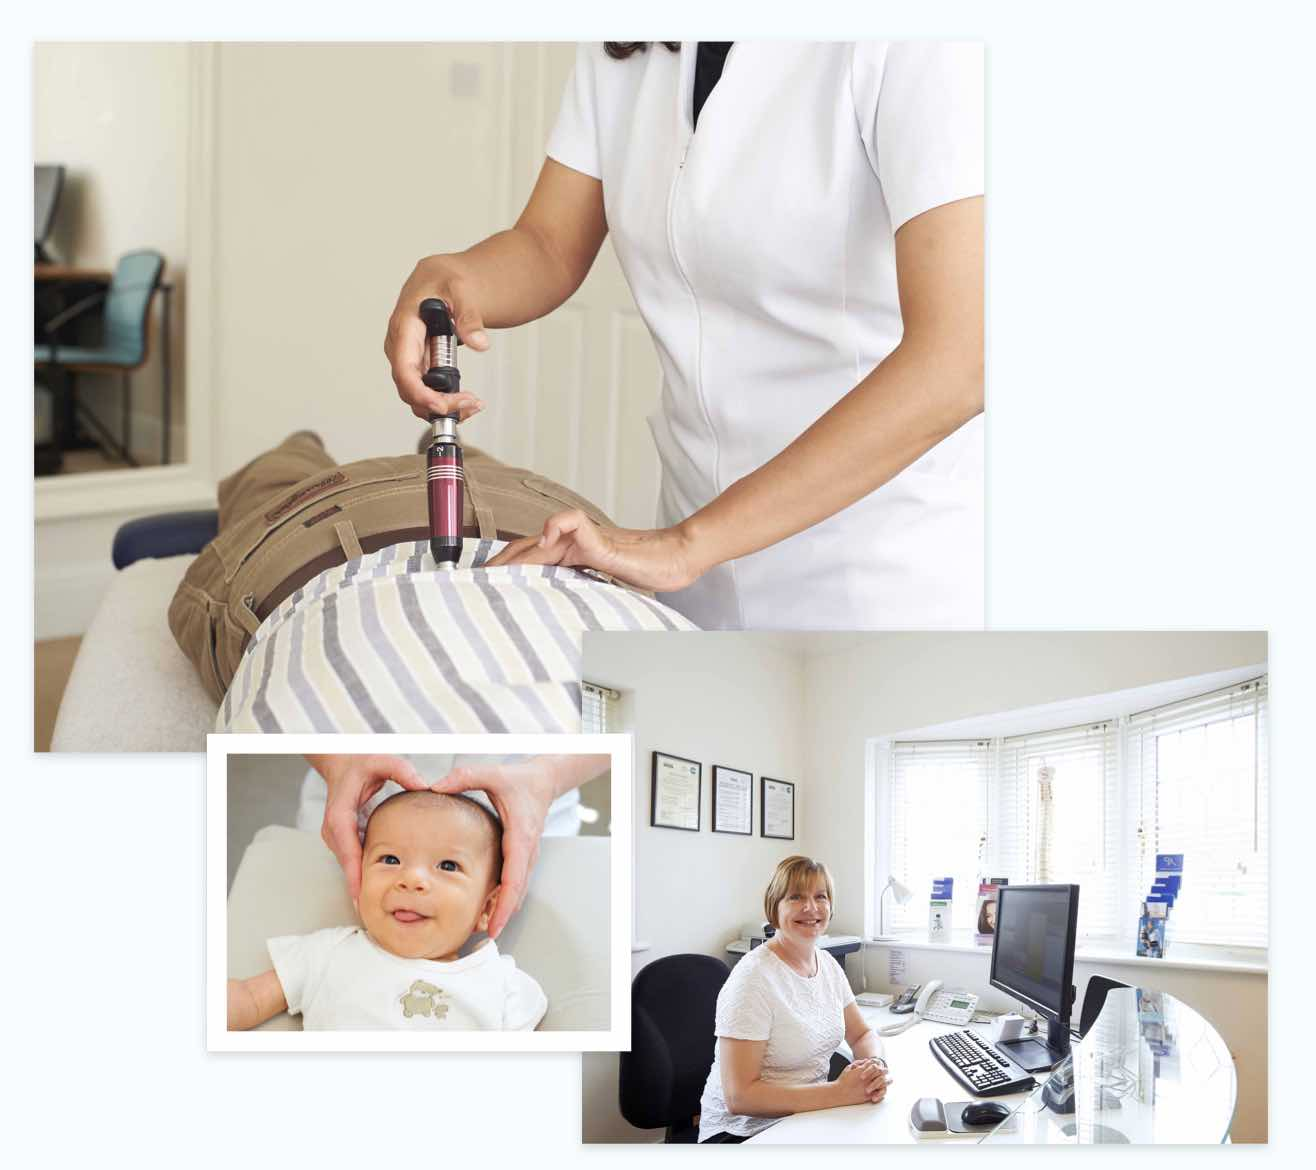 Images of Wickford Chiro Services